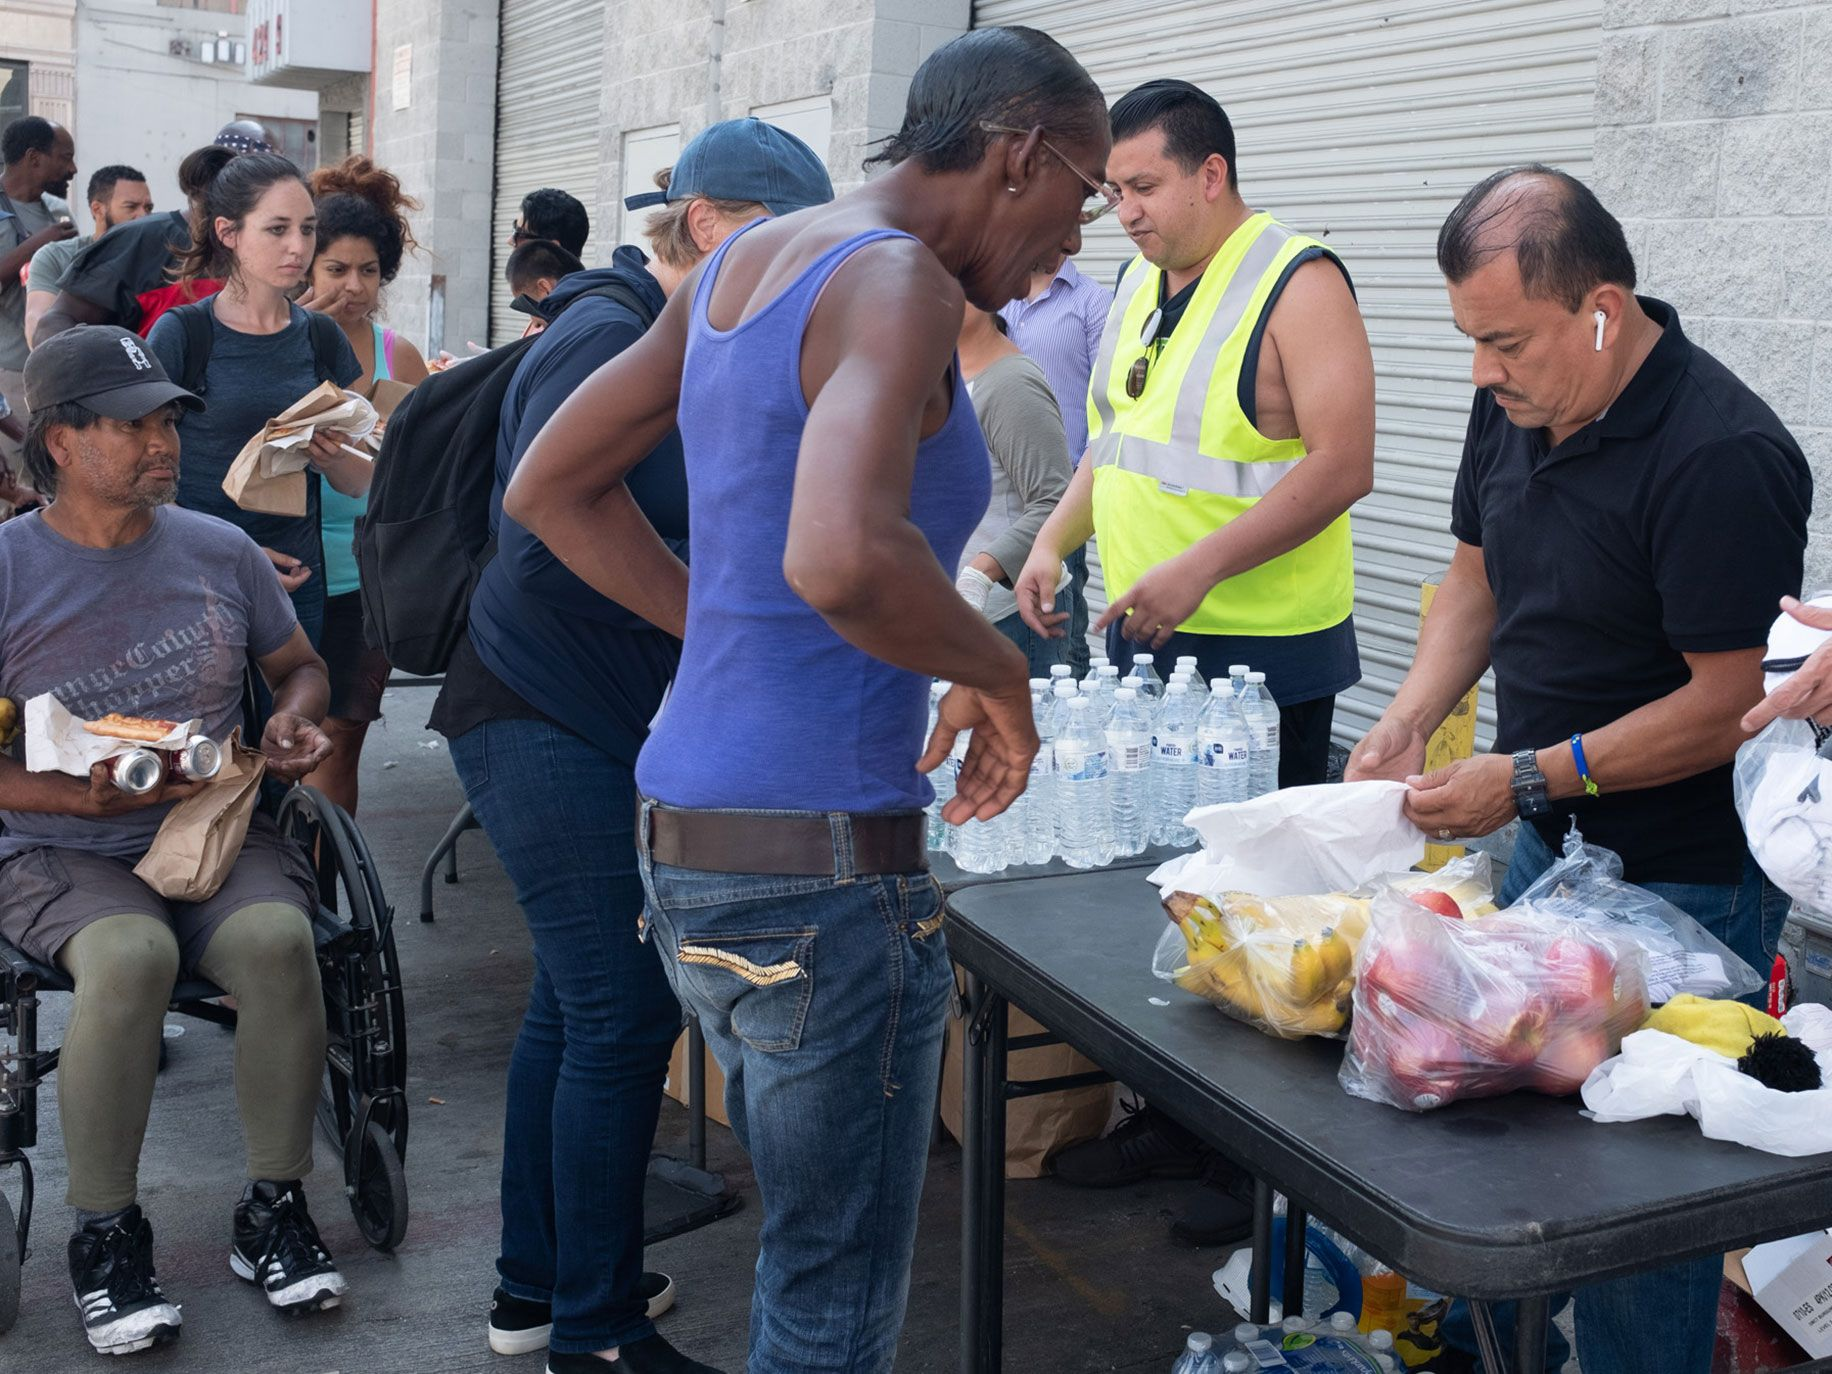 One of many pop-up sites set up by volunteers, most of them connected to churches, to distribute water, food, and clothing.